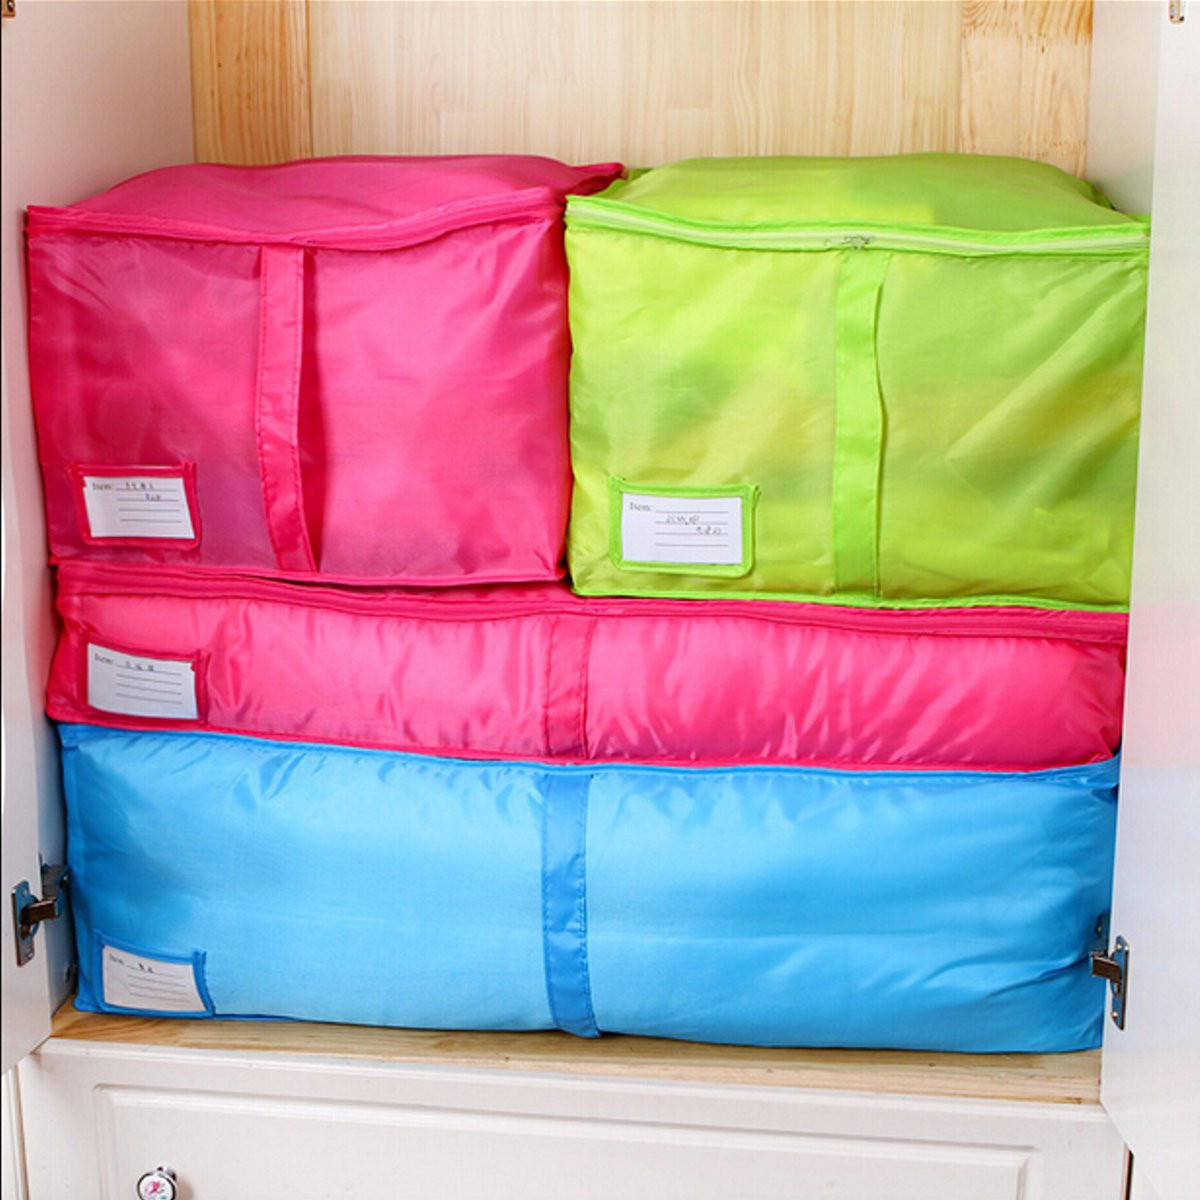 Portable Quilts Storage Bags Packing Luggage Folding Storage Box Clothes Organizer Bags Home Storage Organizer - 2